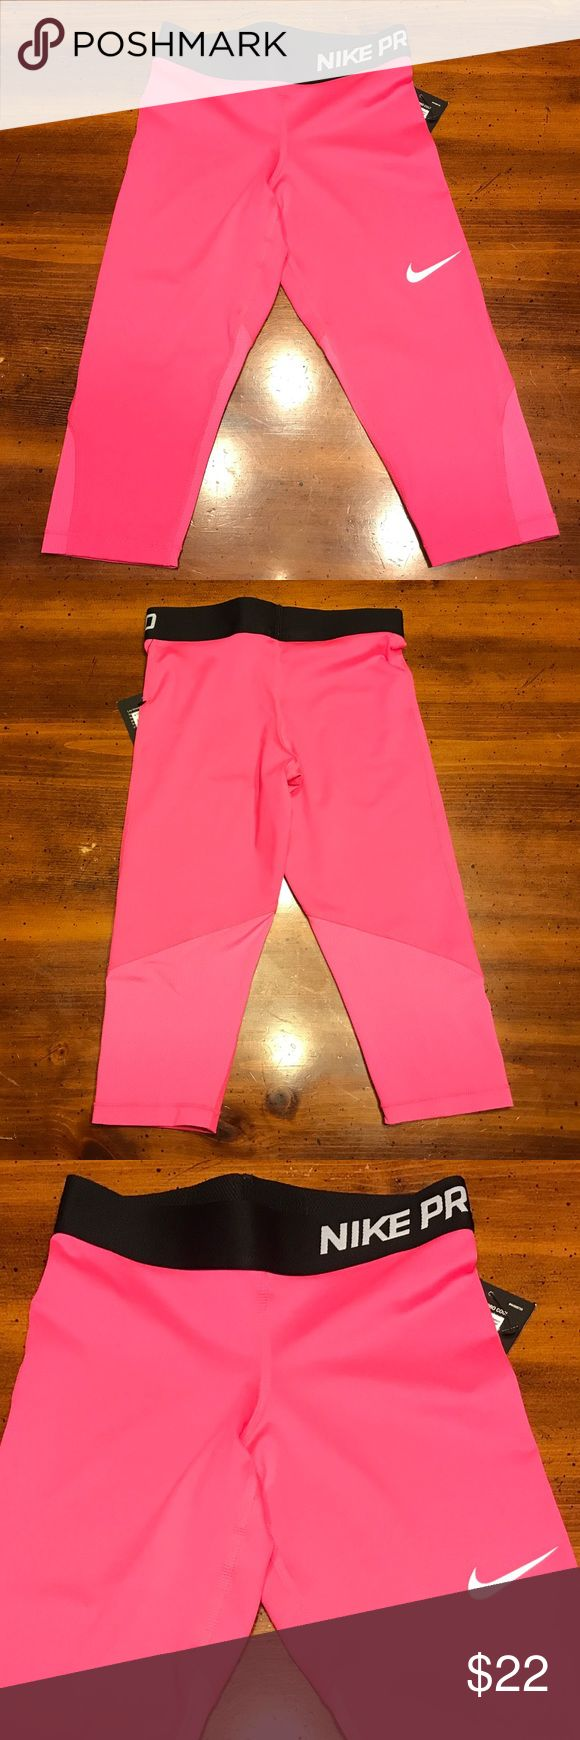 Nike Dri-Fit Girls Size Small Training Pants NWT Nike Dri-Fit Girls Size Small Capri Training Pants NWT Nike Bottoms Leggings